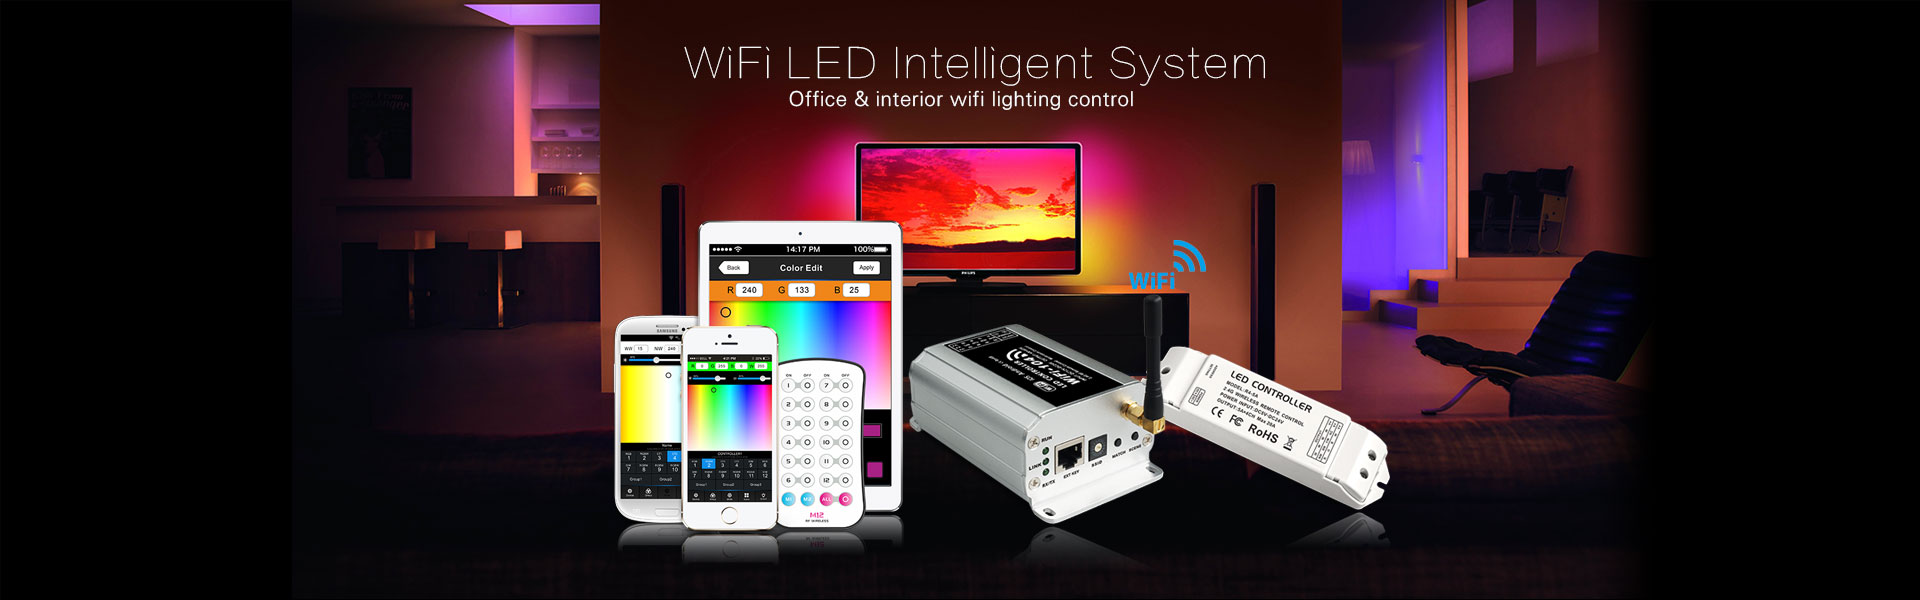 LED WiFi Control system